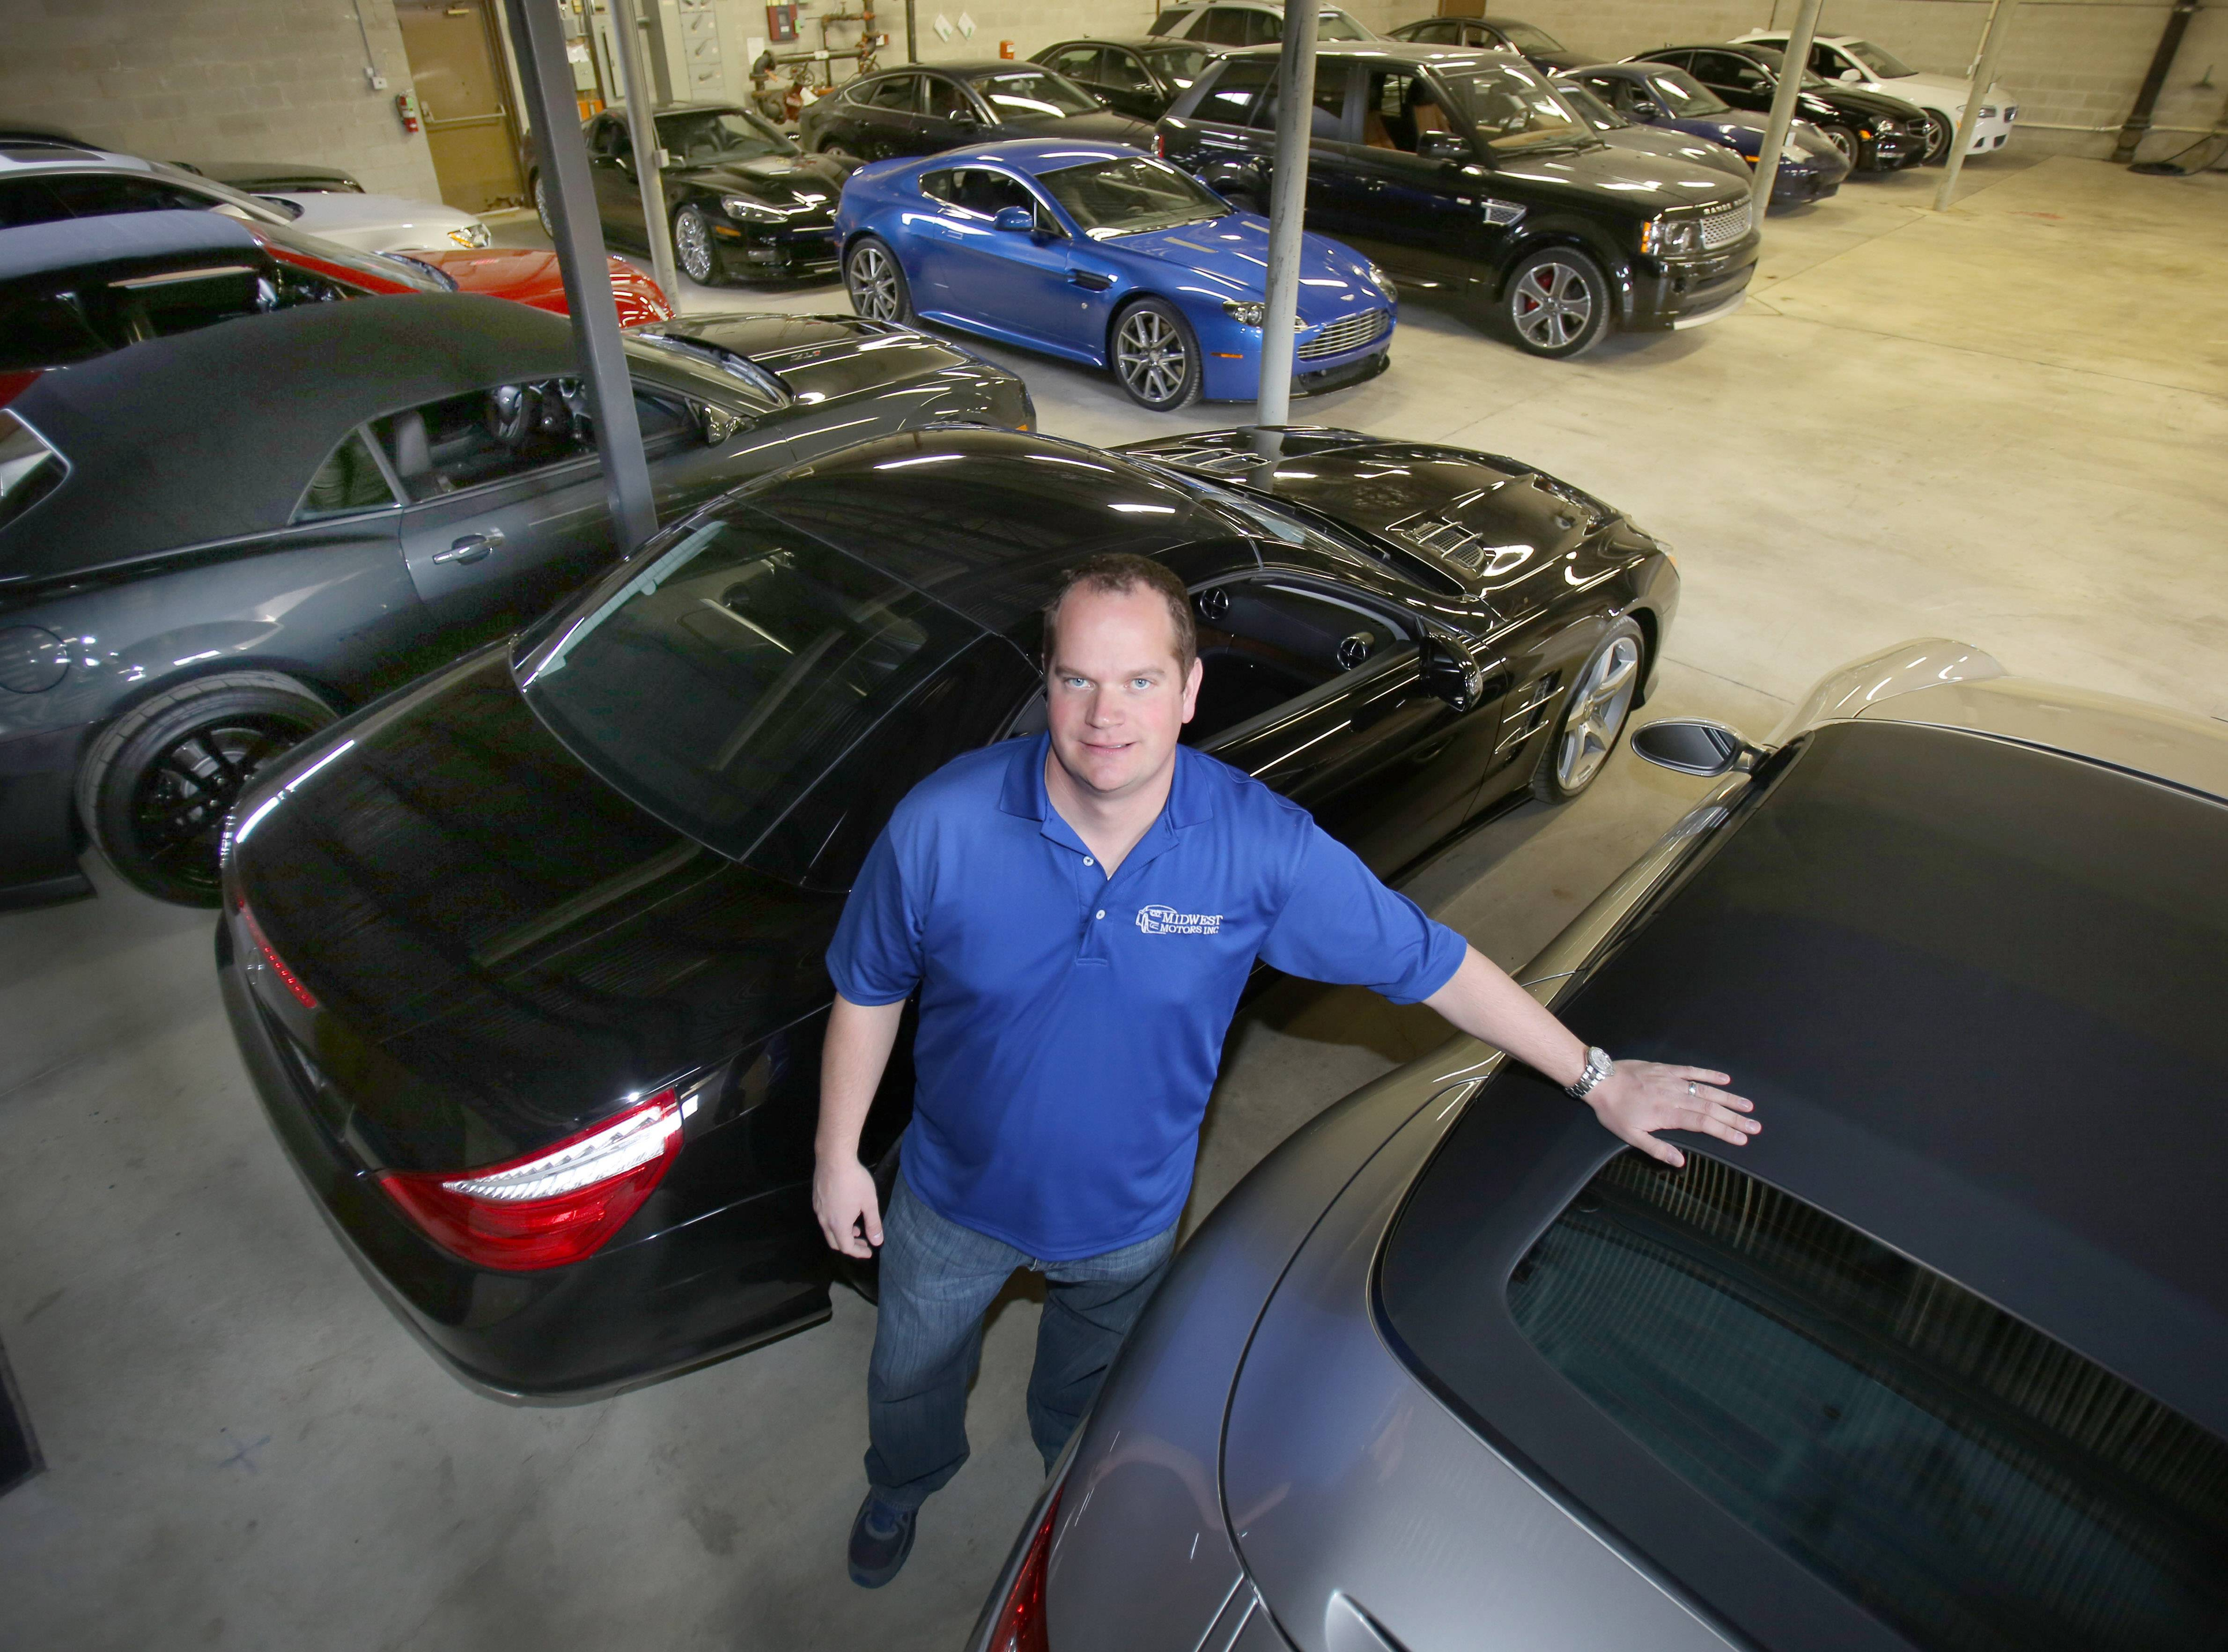 Benjamin Ripstein, owner of Midwest Motors Inc. in Lake Zurich, with high-end luxury cars Wednesday in a temporary location on Oakwood Road. A fire last week forced him out of his building on Cortland Drive on the village's west side.